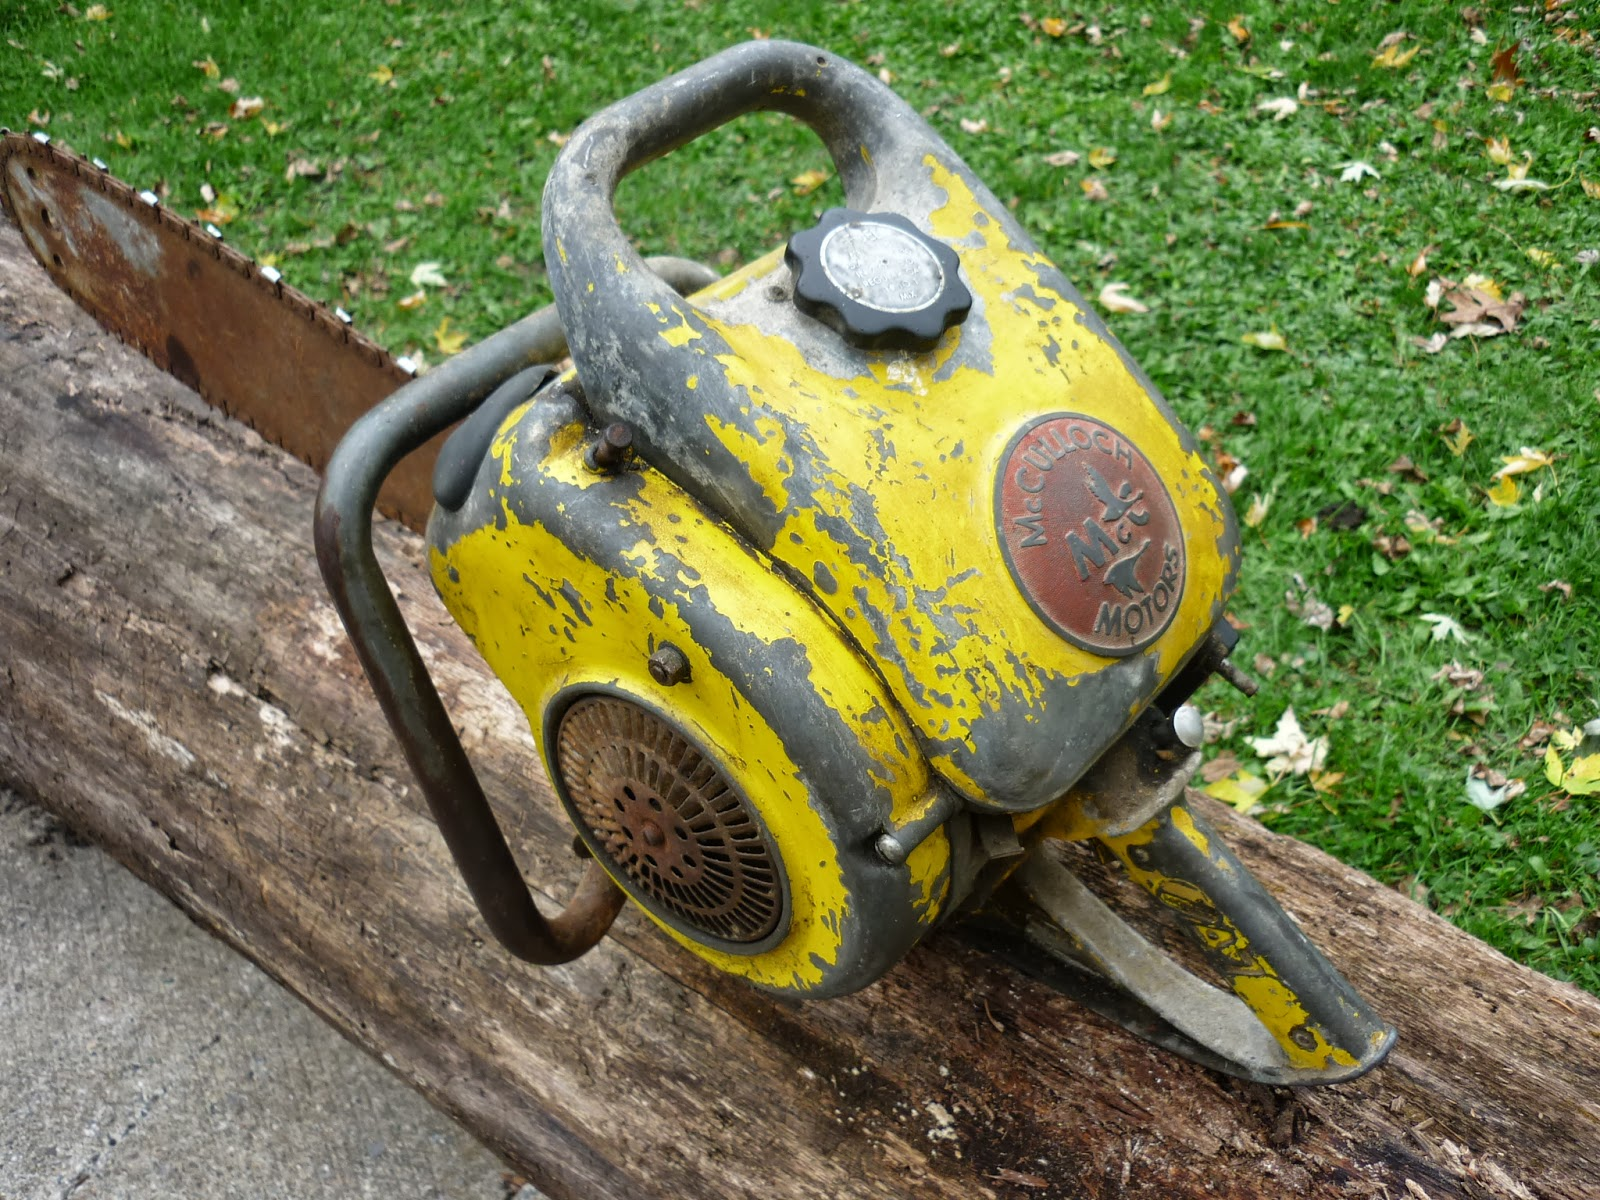 VINTAGE CHAINSAW COLLECTION: MCCULLOCH model 47